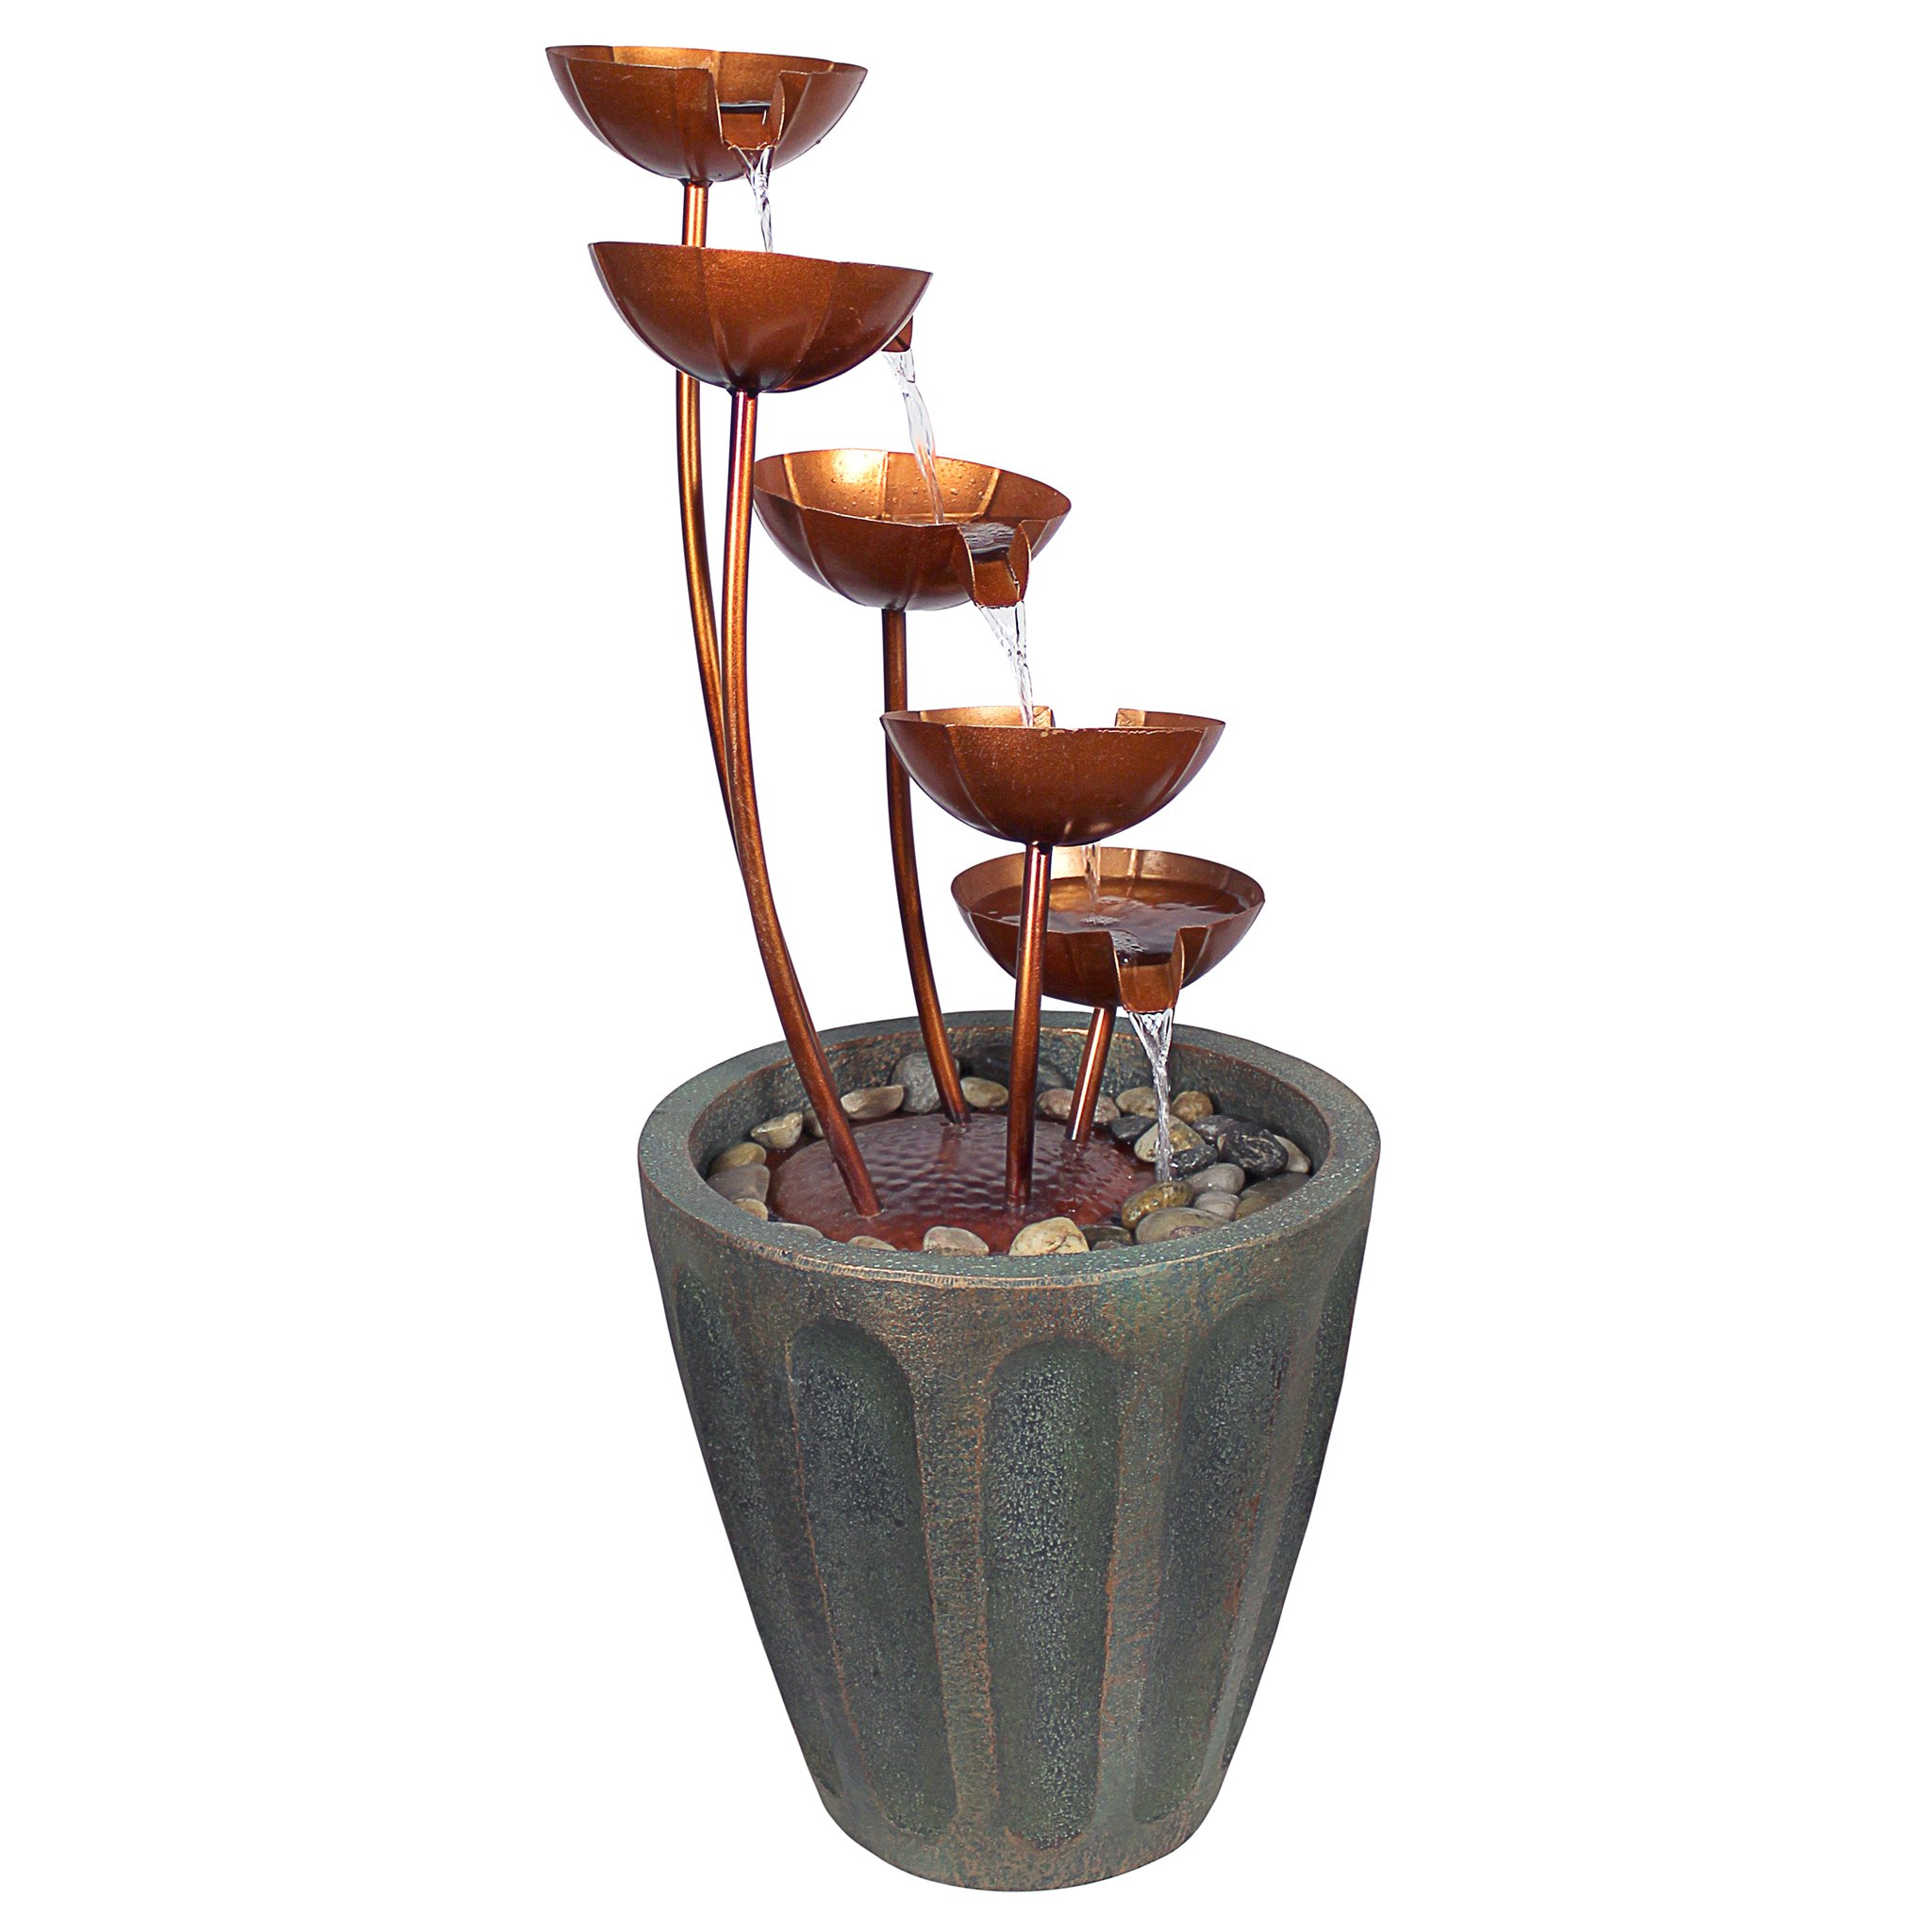 Design Toscano Copper Falls Cascading Garden Fountain by Design Toscano